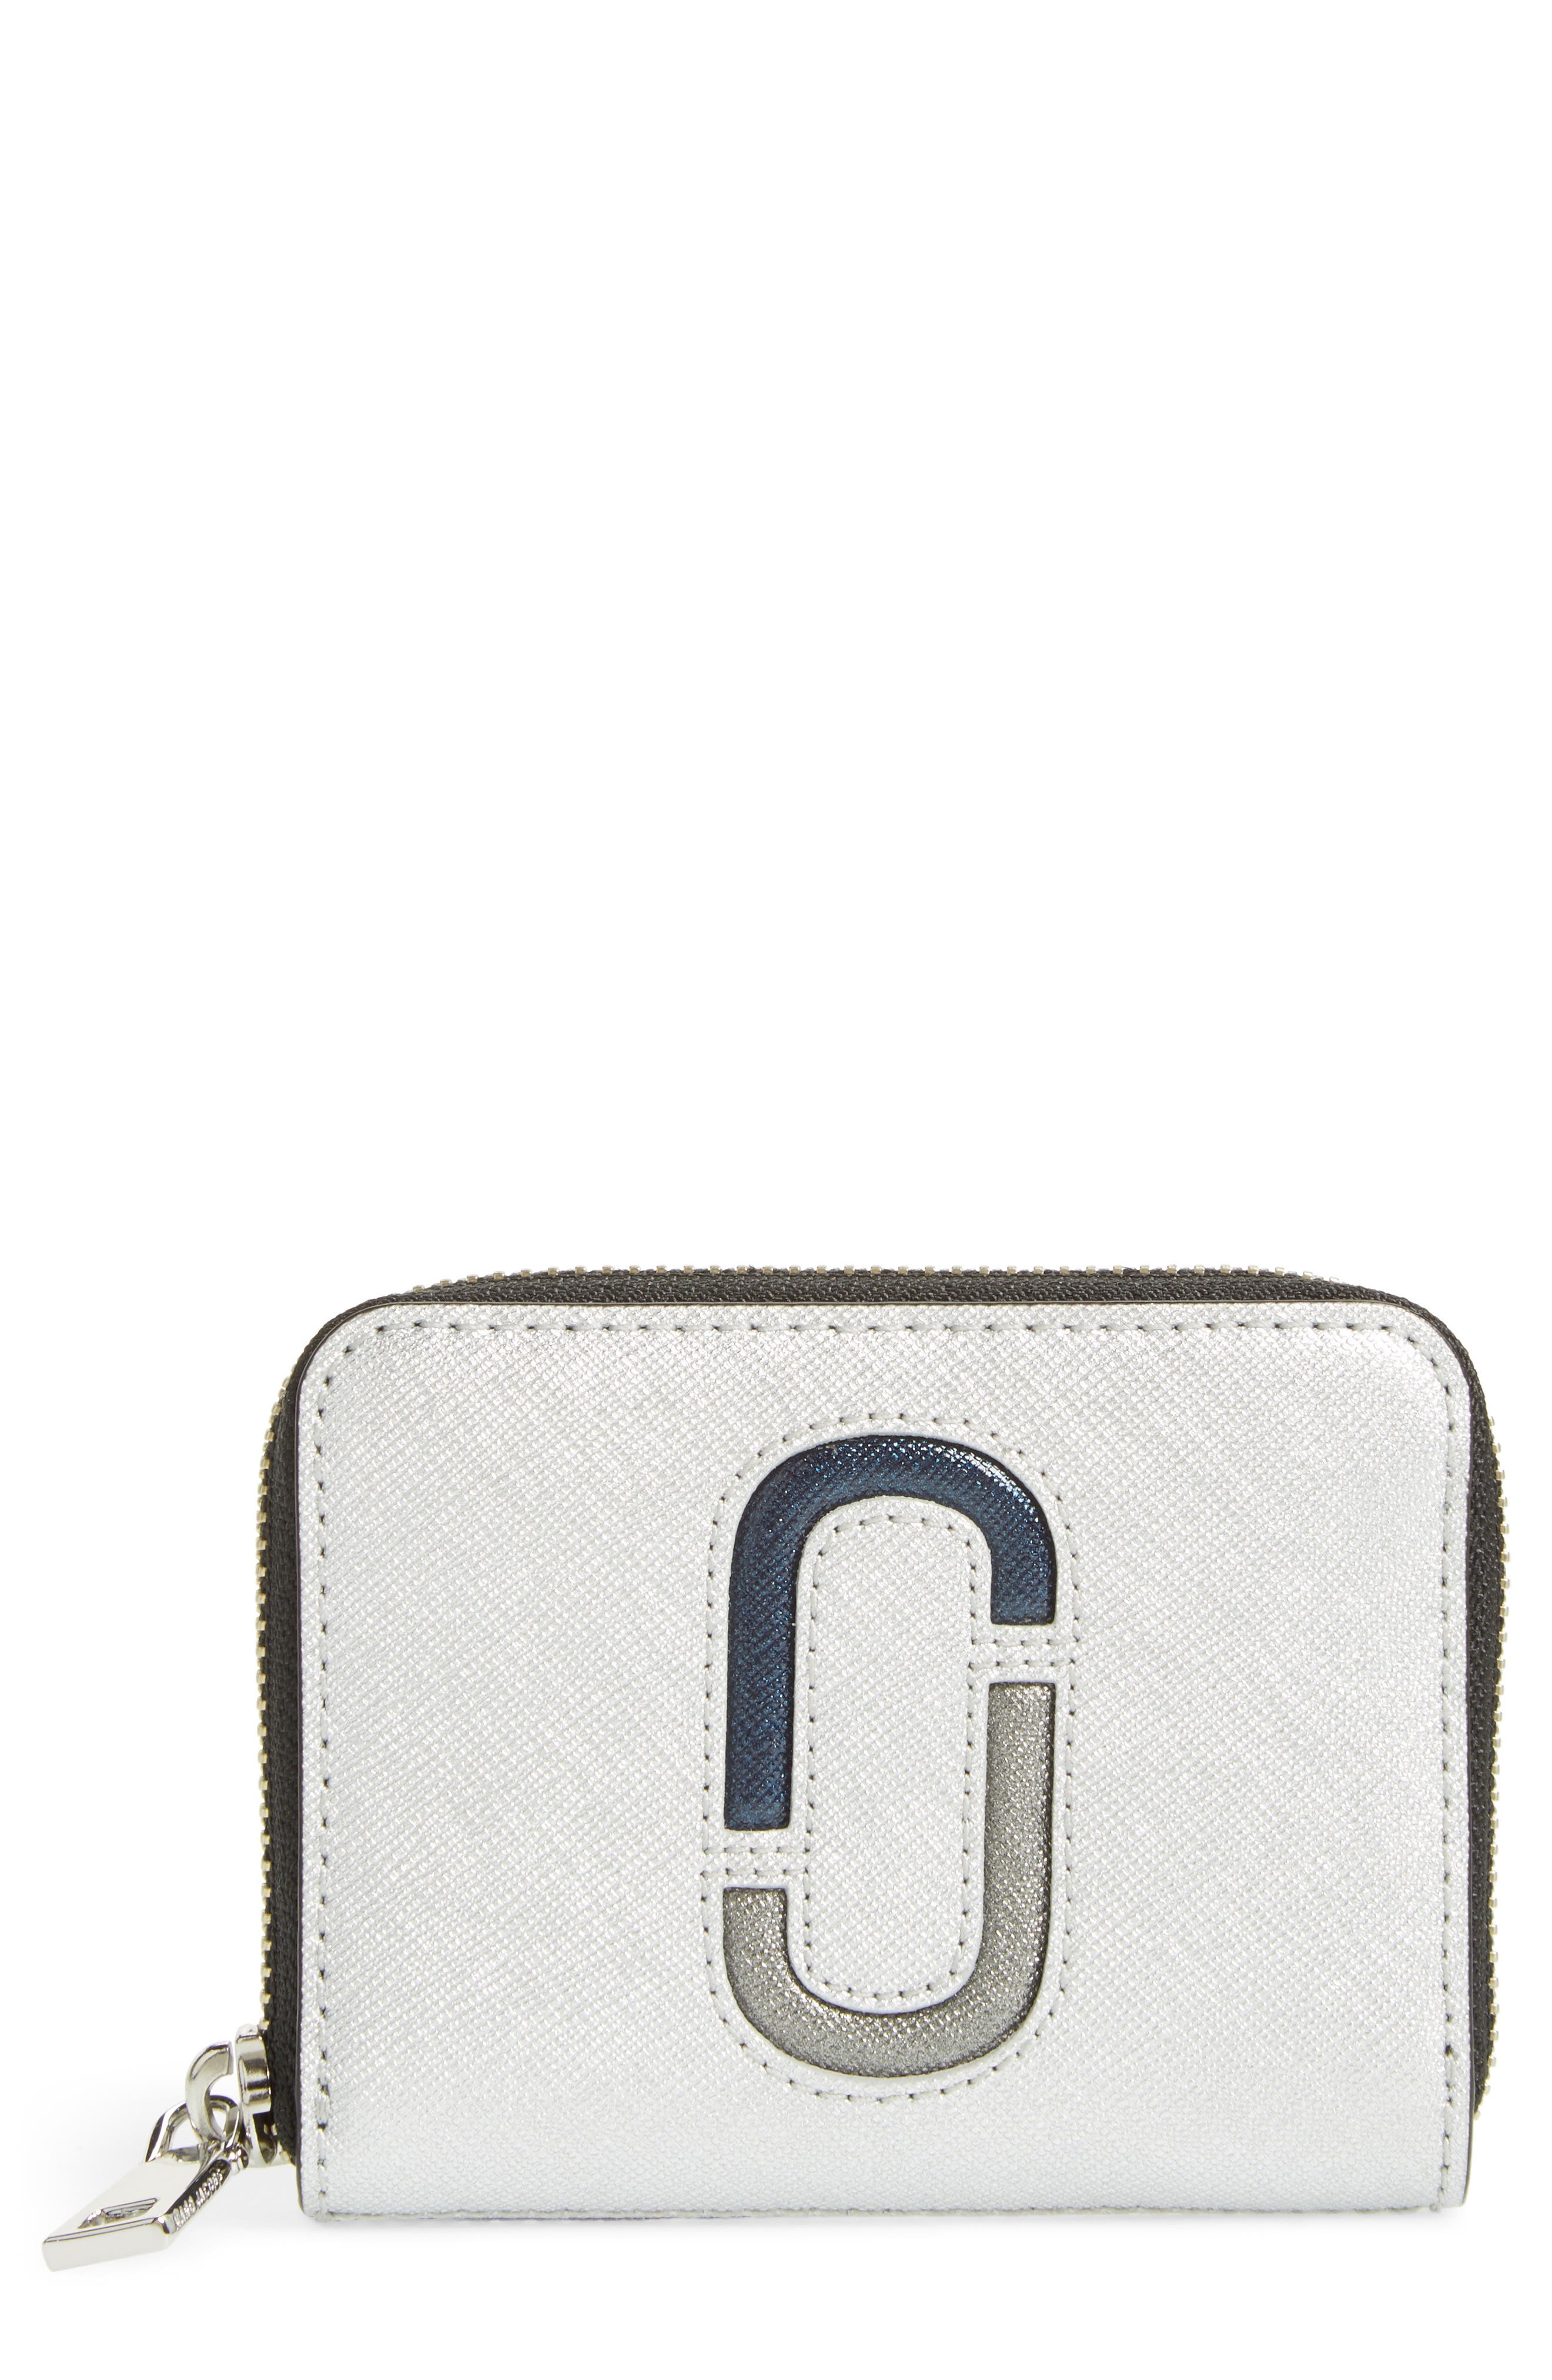 Snapshot Saffiano Leather Zip Around Wallet,                             Main thumbnail 1, color,                             040